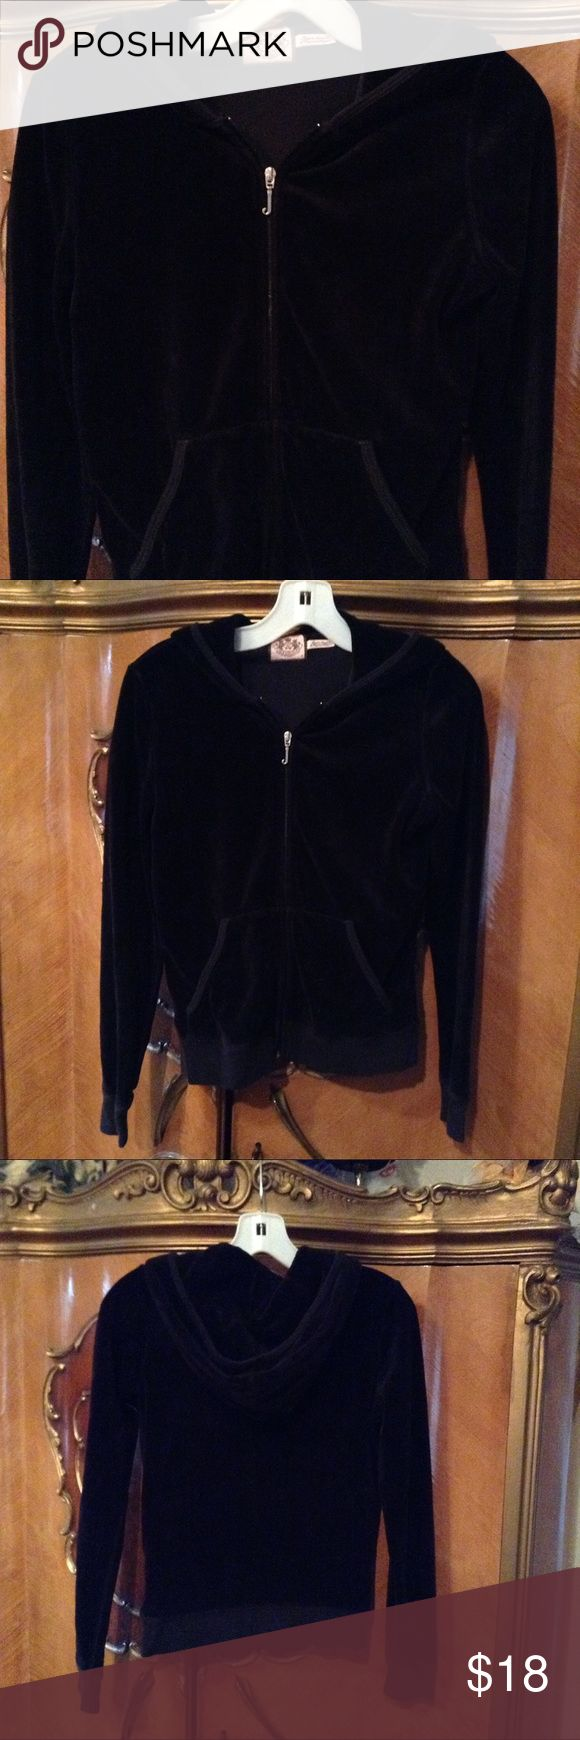 """Juicy Couture Black Velour Jacket Very nice black velour jacket, zip front with silver """"J"""", front pockets, long sleeves, hooded, excellent condition. Juicy Couture Jackets & Coats"""